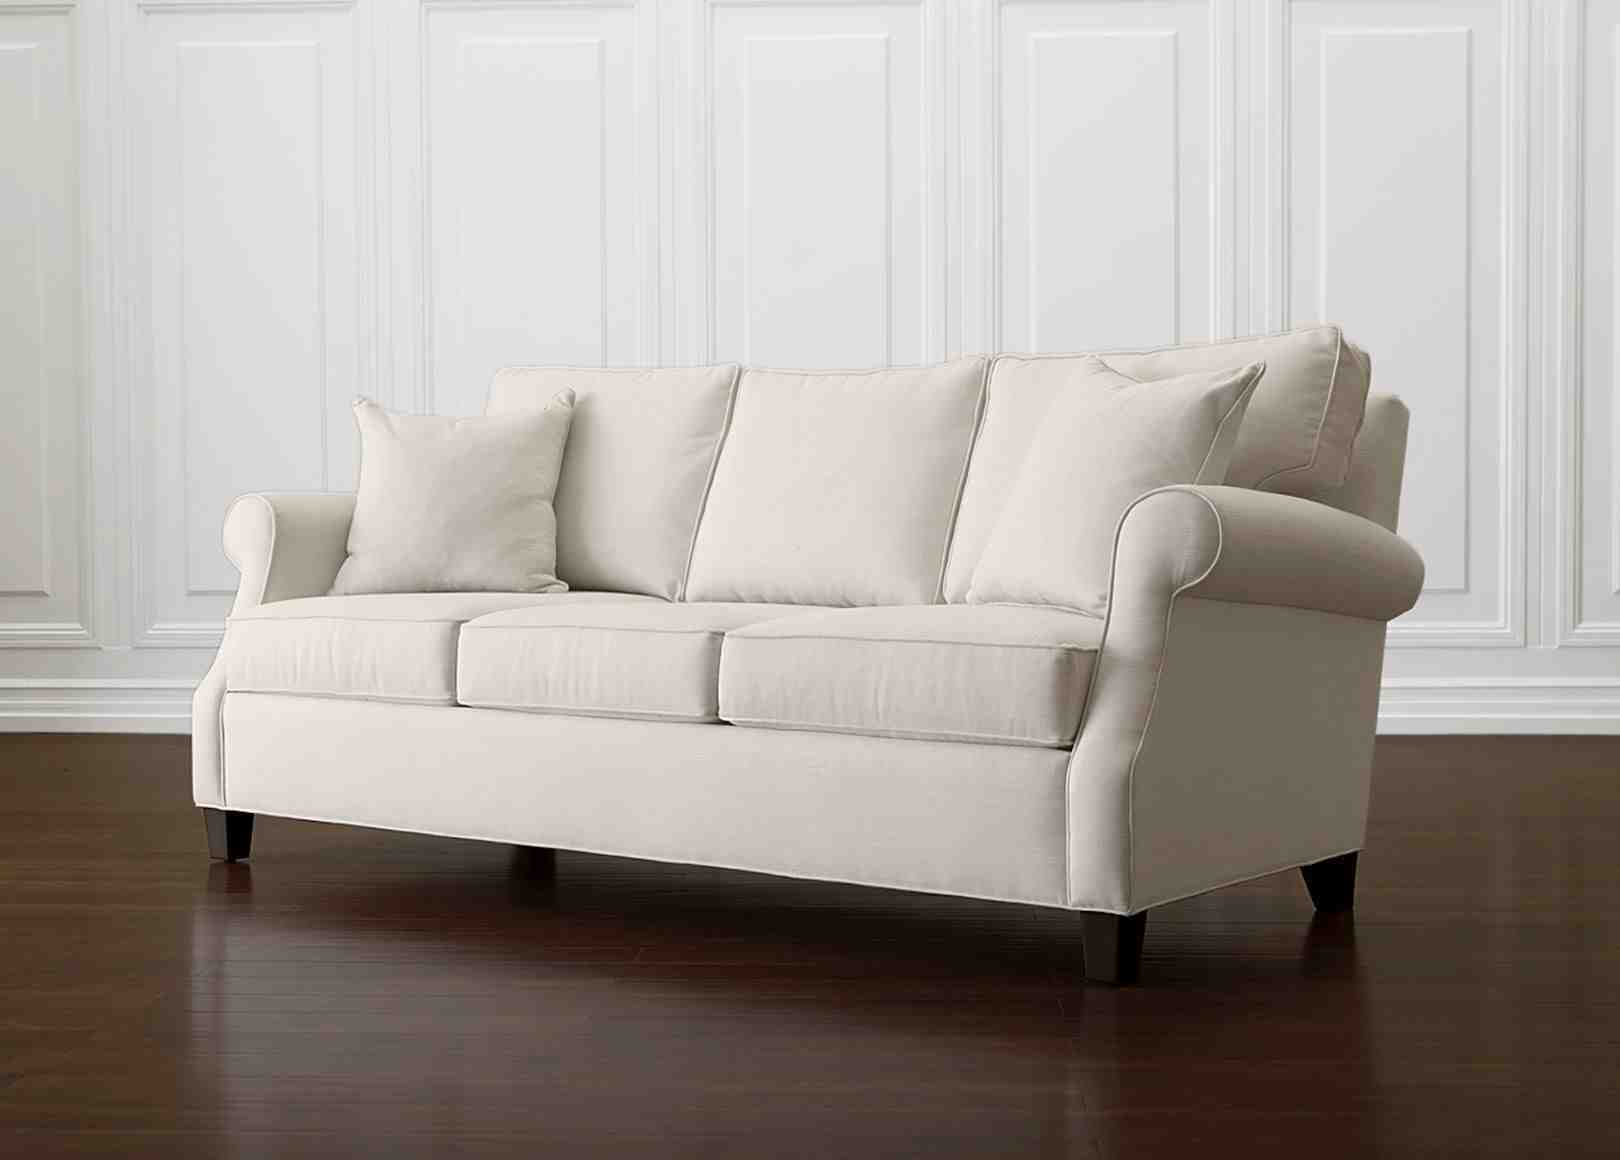 Sofas By Ethan Allen Ethan Allen Sofas On Sale - Home Furniture Design